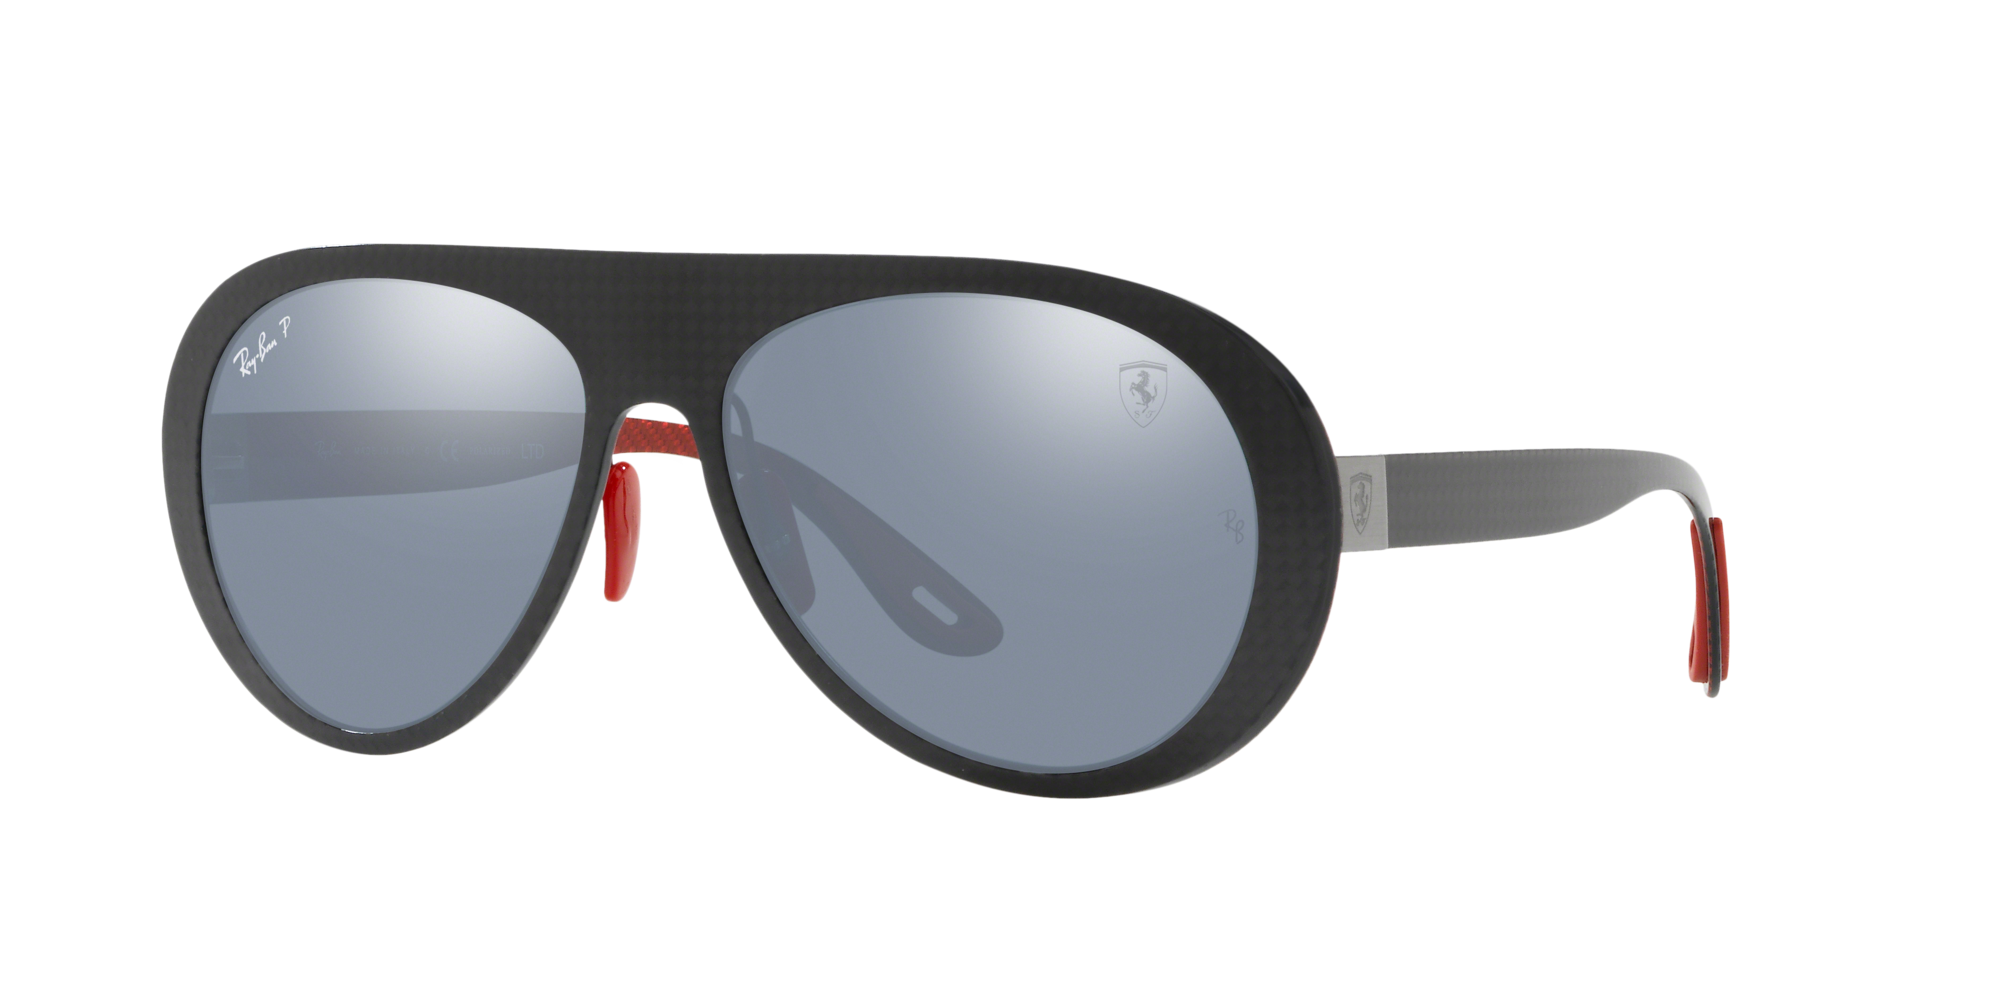 Ray Ban Man  RB8321M SCUDERIA FERRARI ITALY LIMITED EDITION -  Frame color: Gunmetal, Lens color: Blue/Silver Mirror Chromance Polarized, Size 58-16/1